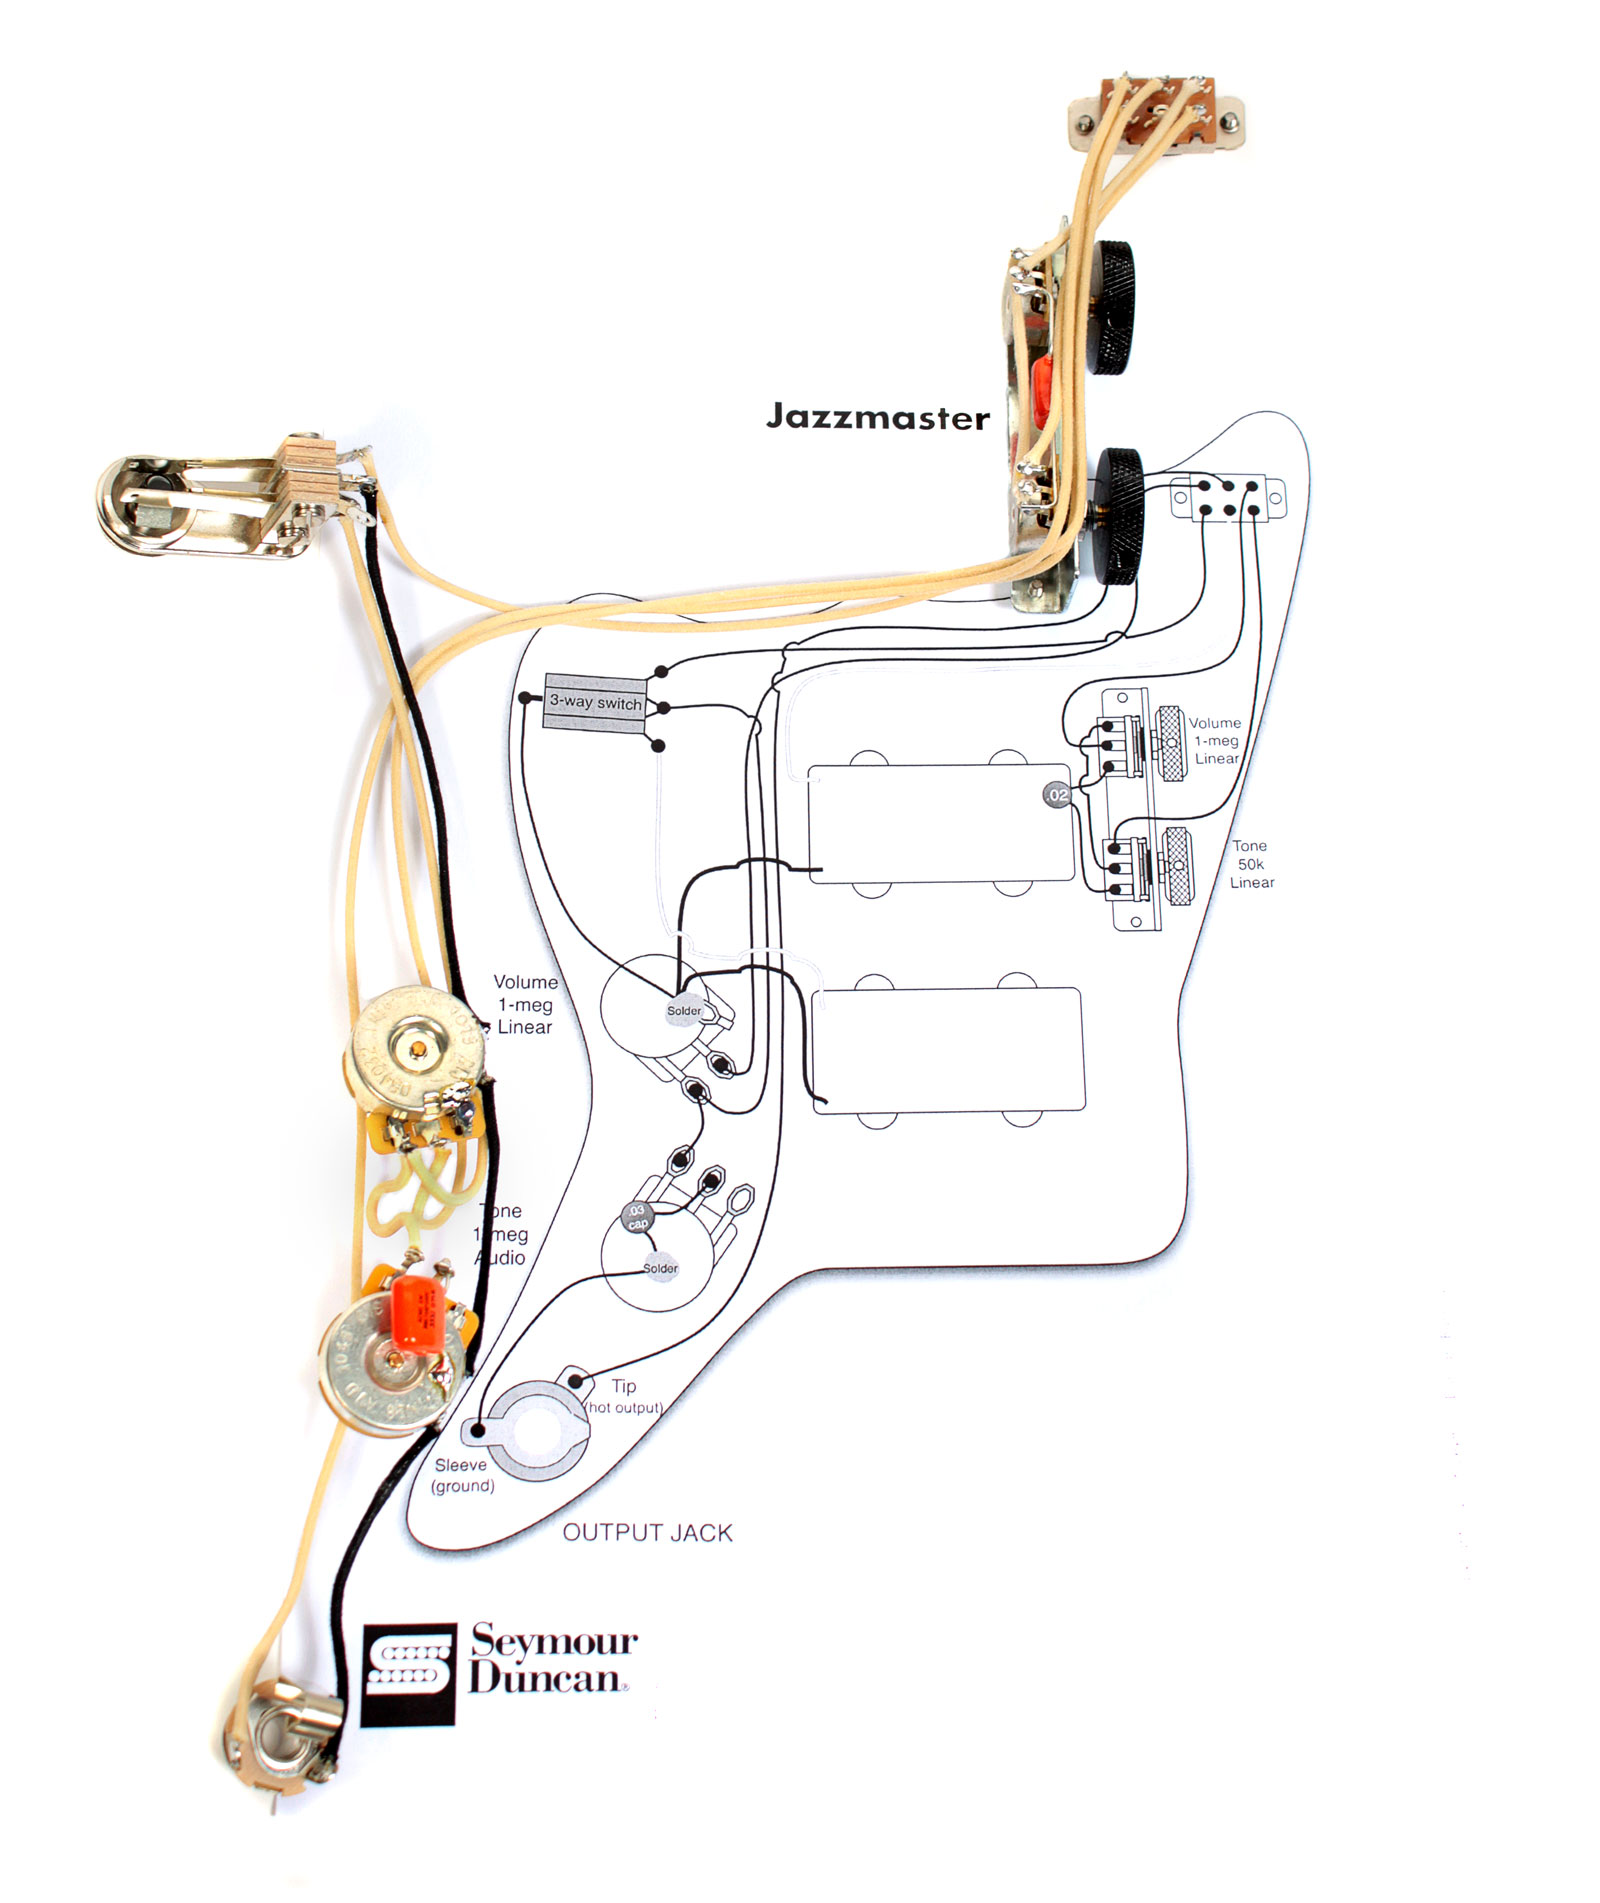 1979 fender stratocaster wiring diagram 1972 fender stratocaster wiring diagram fender vintage traditional jazzmaster guitar pre-wired ...